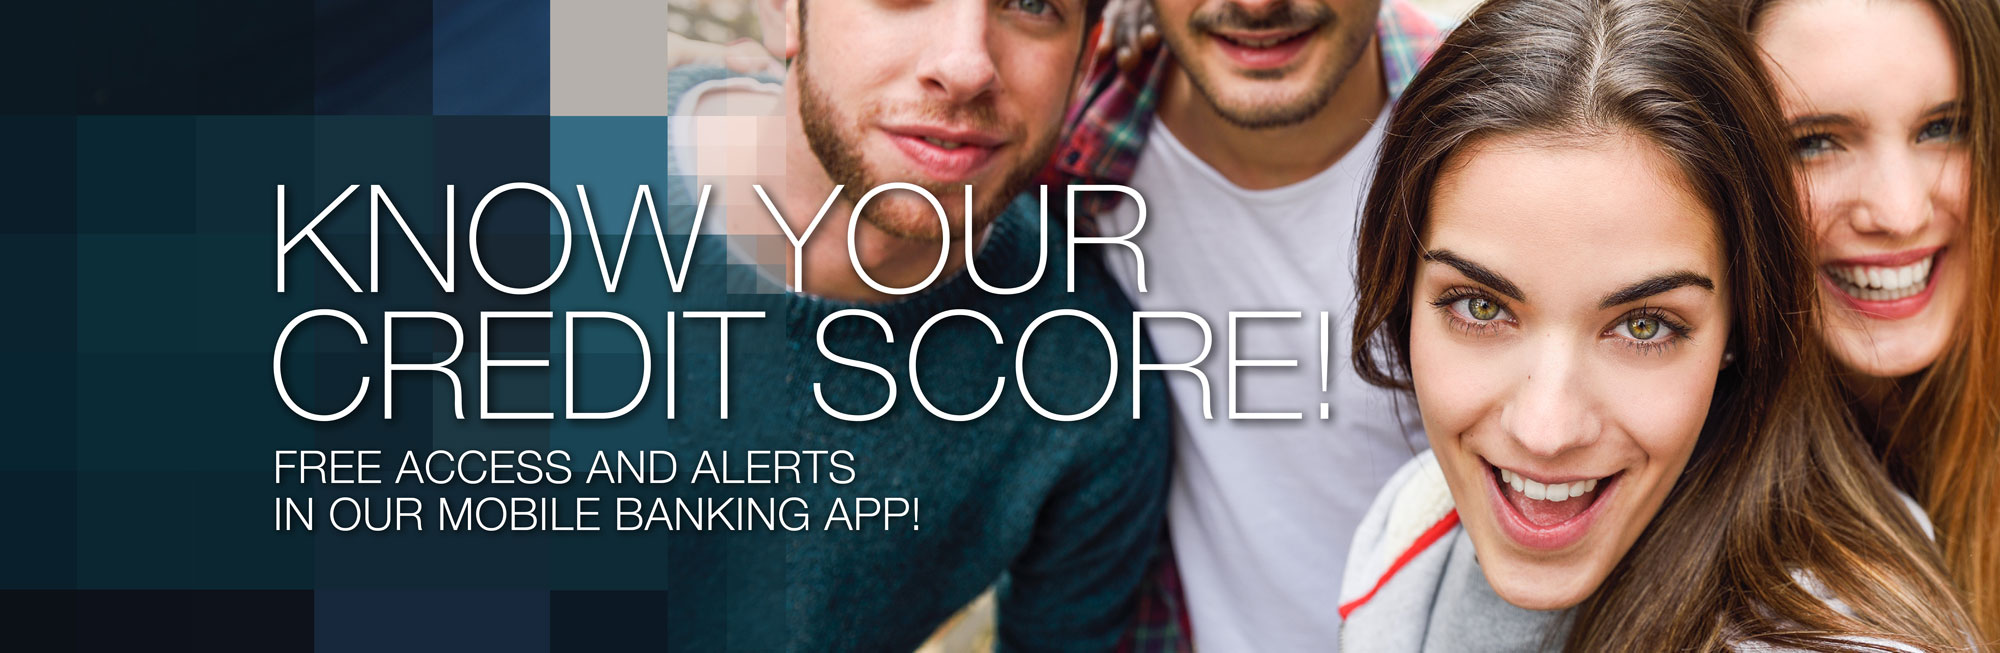 Know your credit score with free access and alerts. Stay up-to-date and secure — see your credit score and monitor your credit activity in our Mobile Banking App!